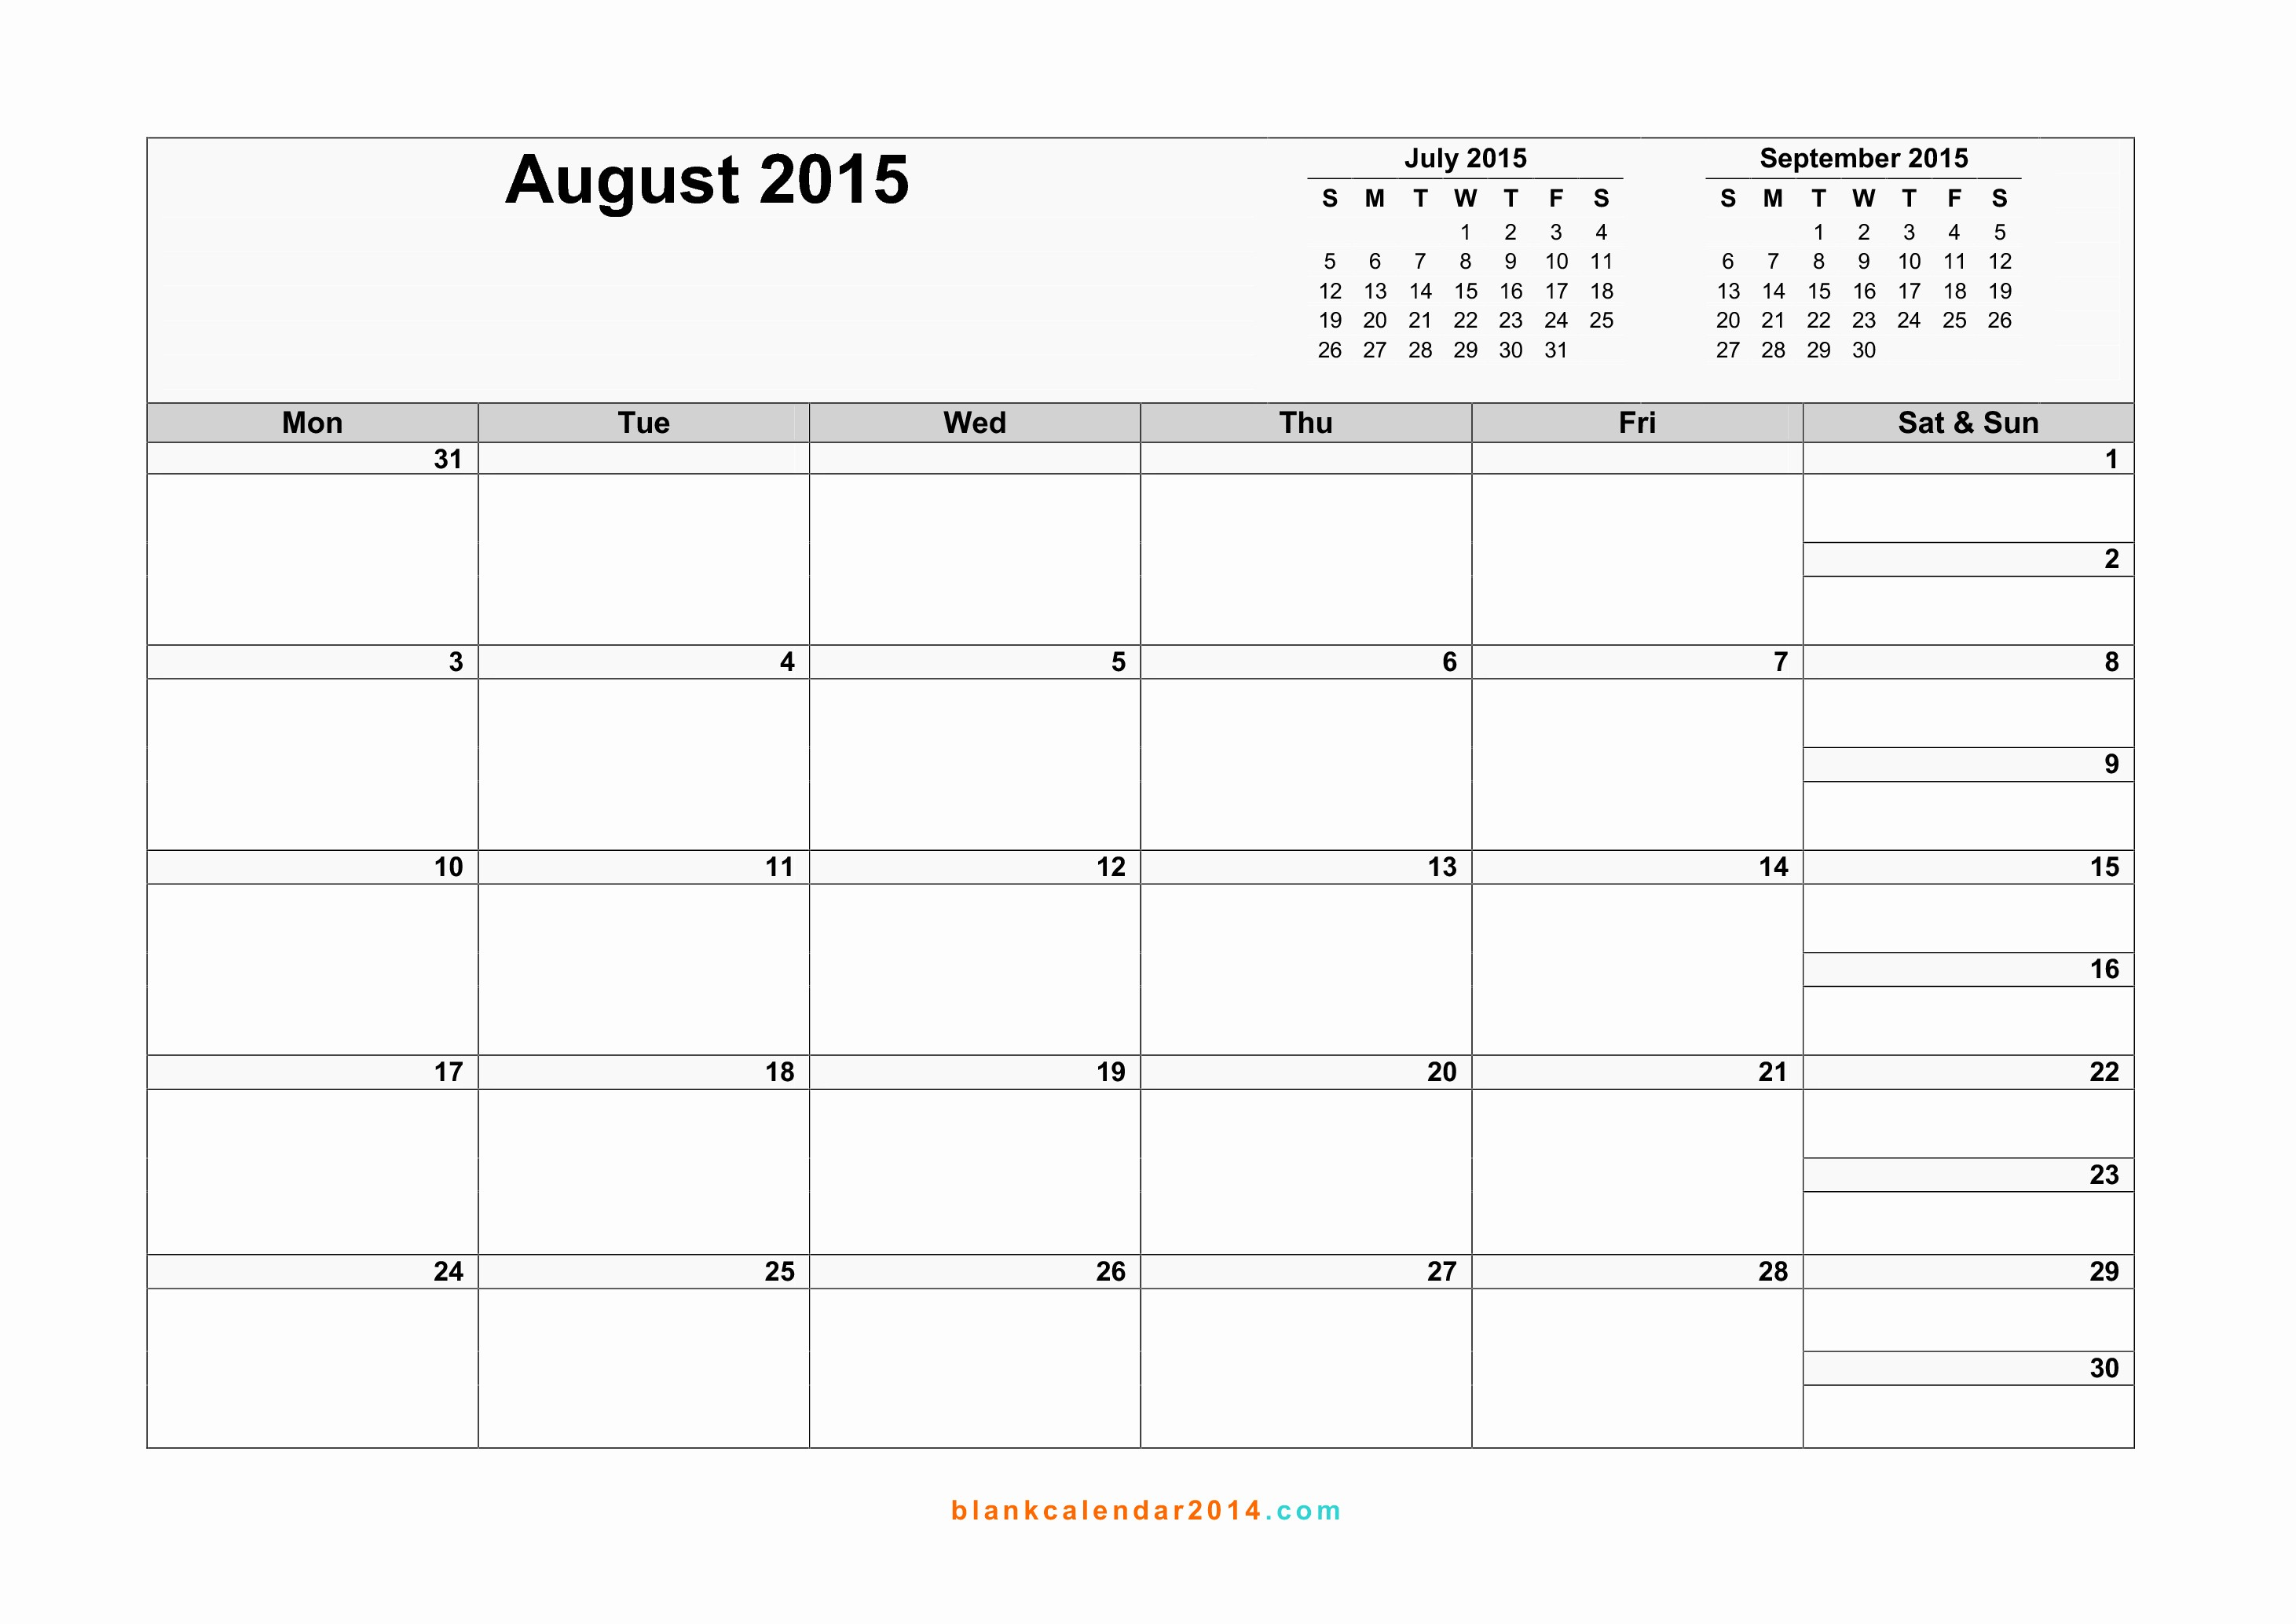 Month by Month Calendar Template Fresh Free Printable 2015 Calendar by Month – 2017 Printable